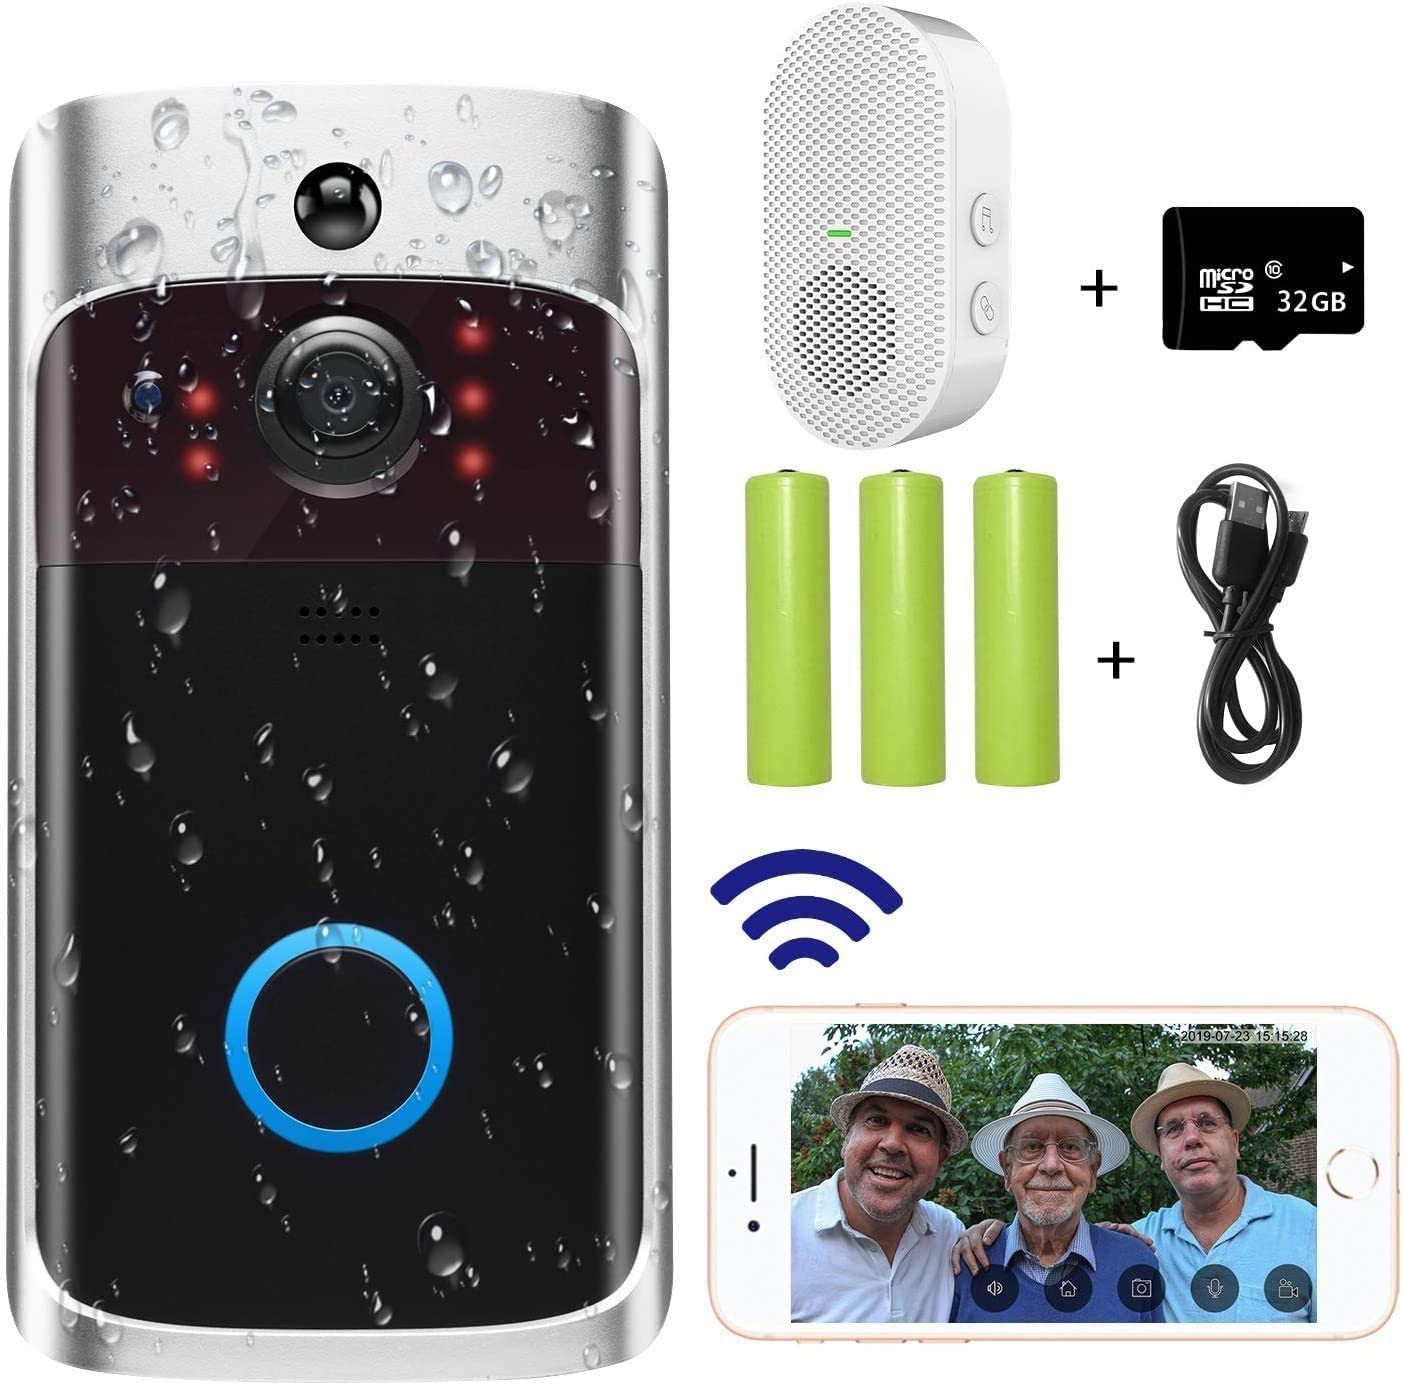 Video Doorbell Camera 2020 Upgraded , Wi-Fi with Smart PIR Motion Detection, Wide Angle, Night Vision, Real-Time Notification, Two-Way Talk, 32GB SD Card is Included Doorbell Chime